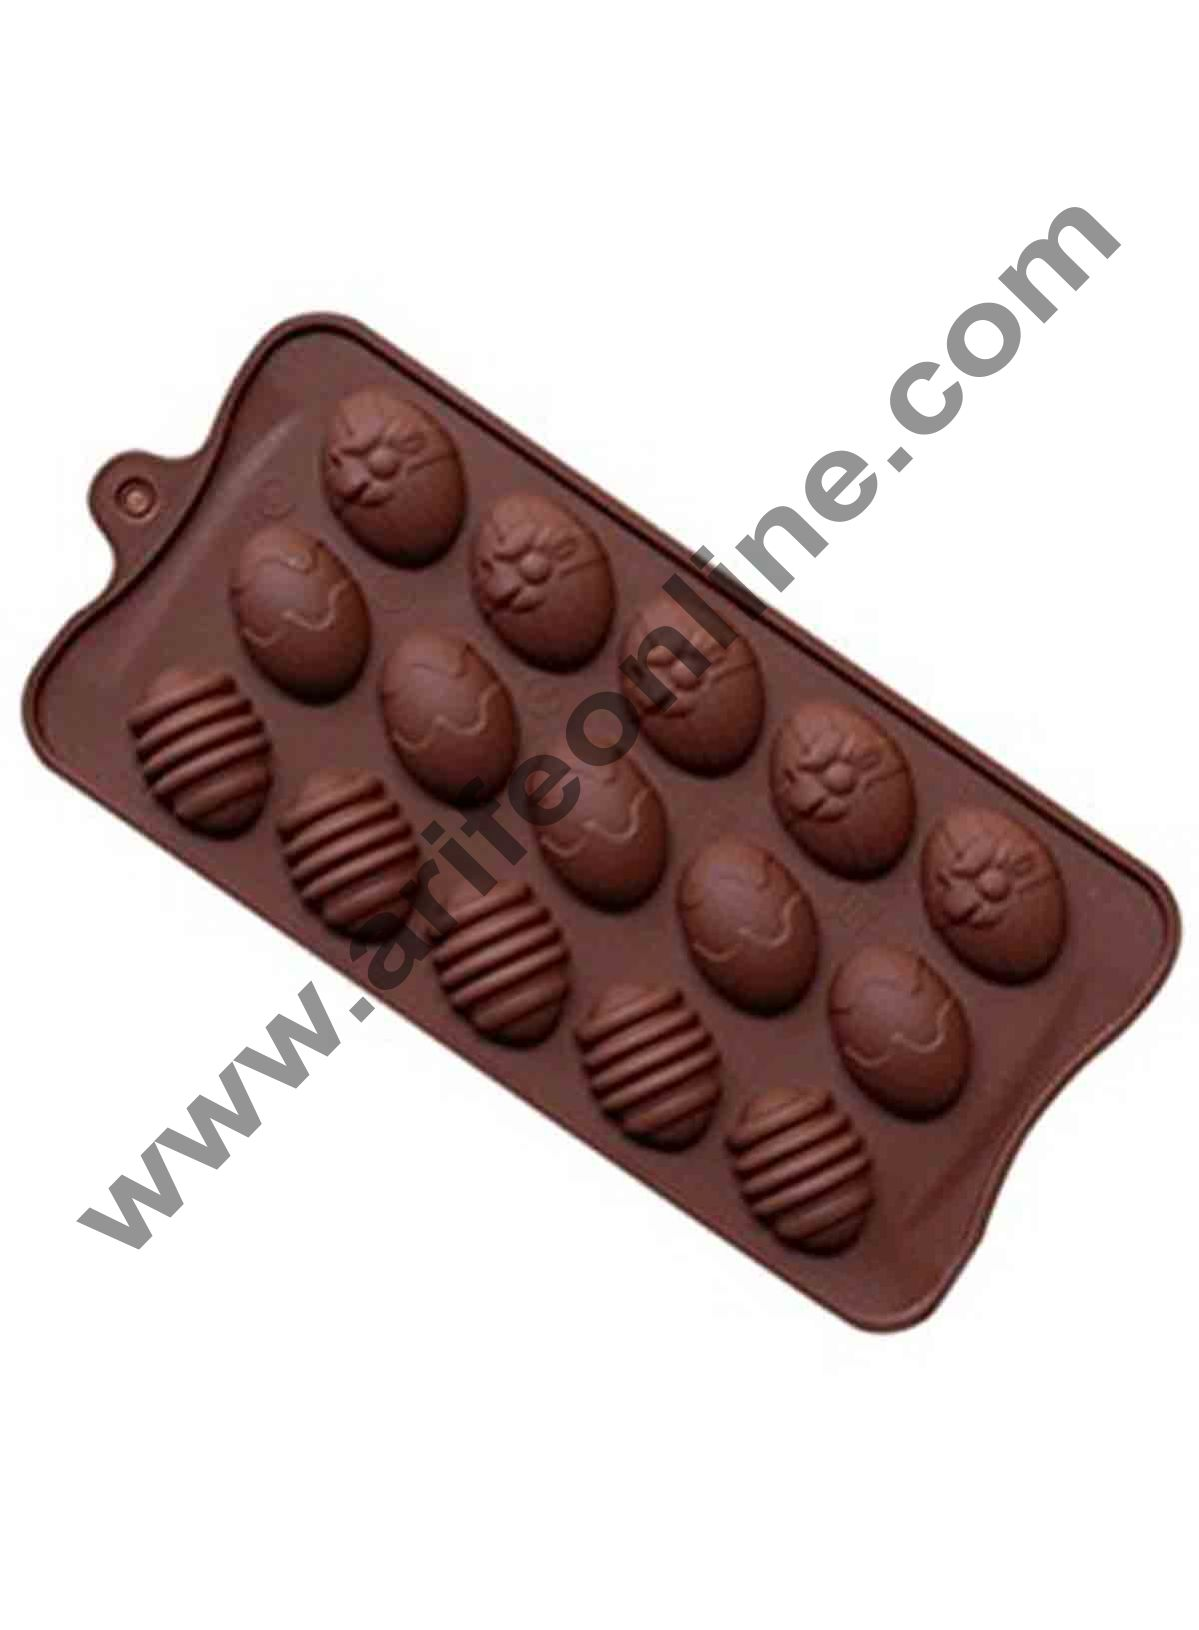 Cake Decor 15-Cavity Easter Egg Silicone Mould for Homemade Soap, Cake, Cupcake, Pudding, Jello, Bread,Soap Ice Cube Tray Mould Mold Shape Silicone Brown Chocolate Moulds